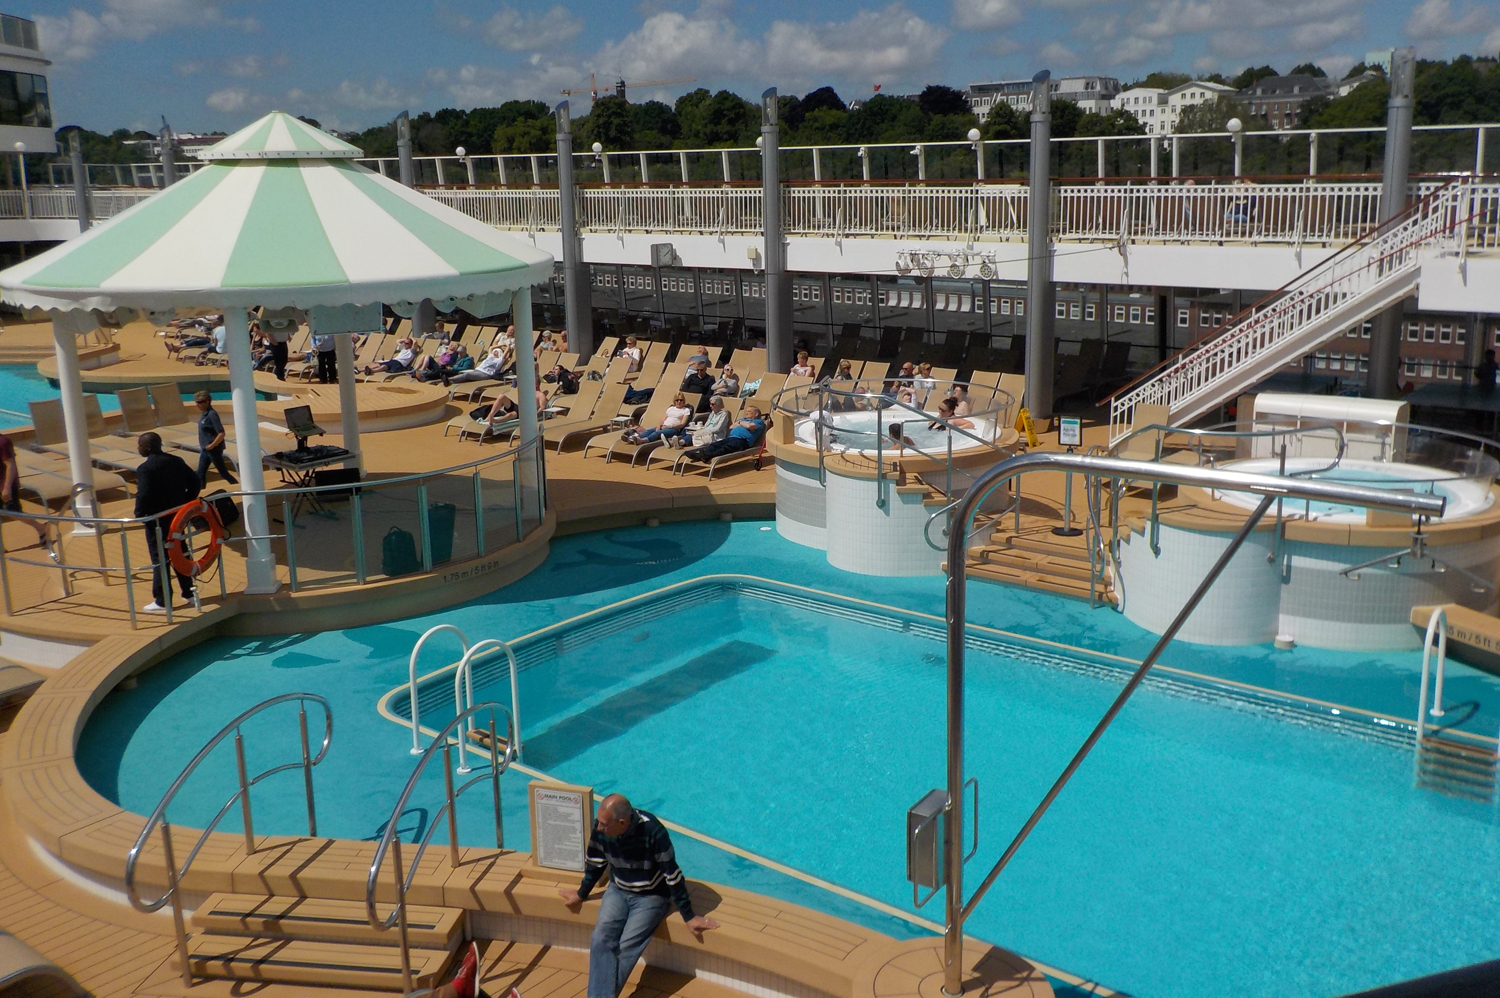 Norwegian Jade - pool area